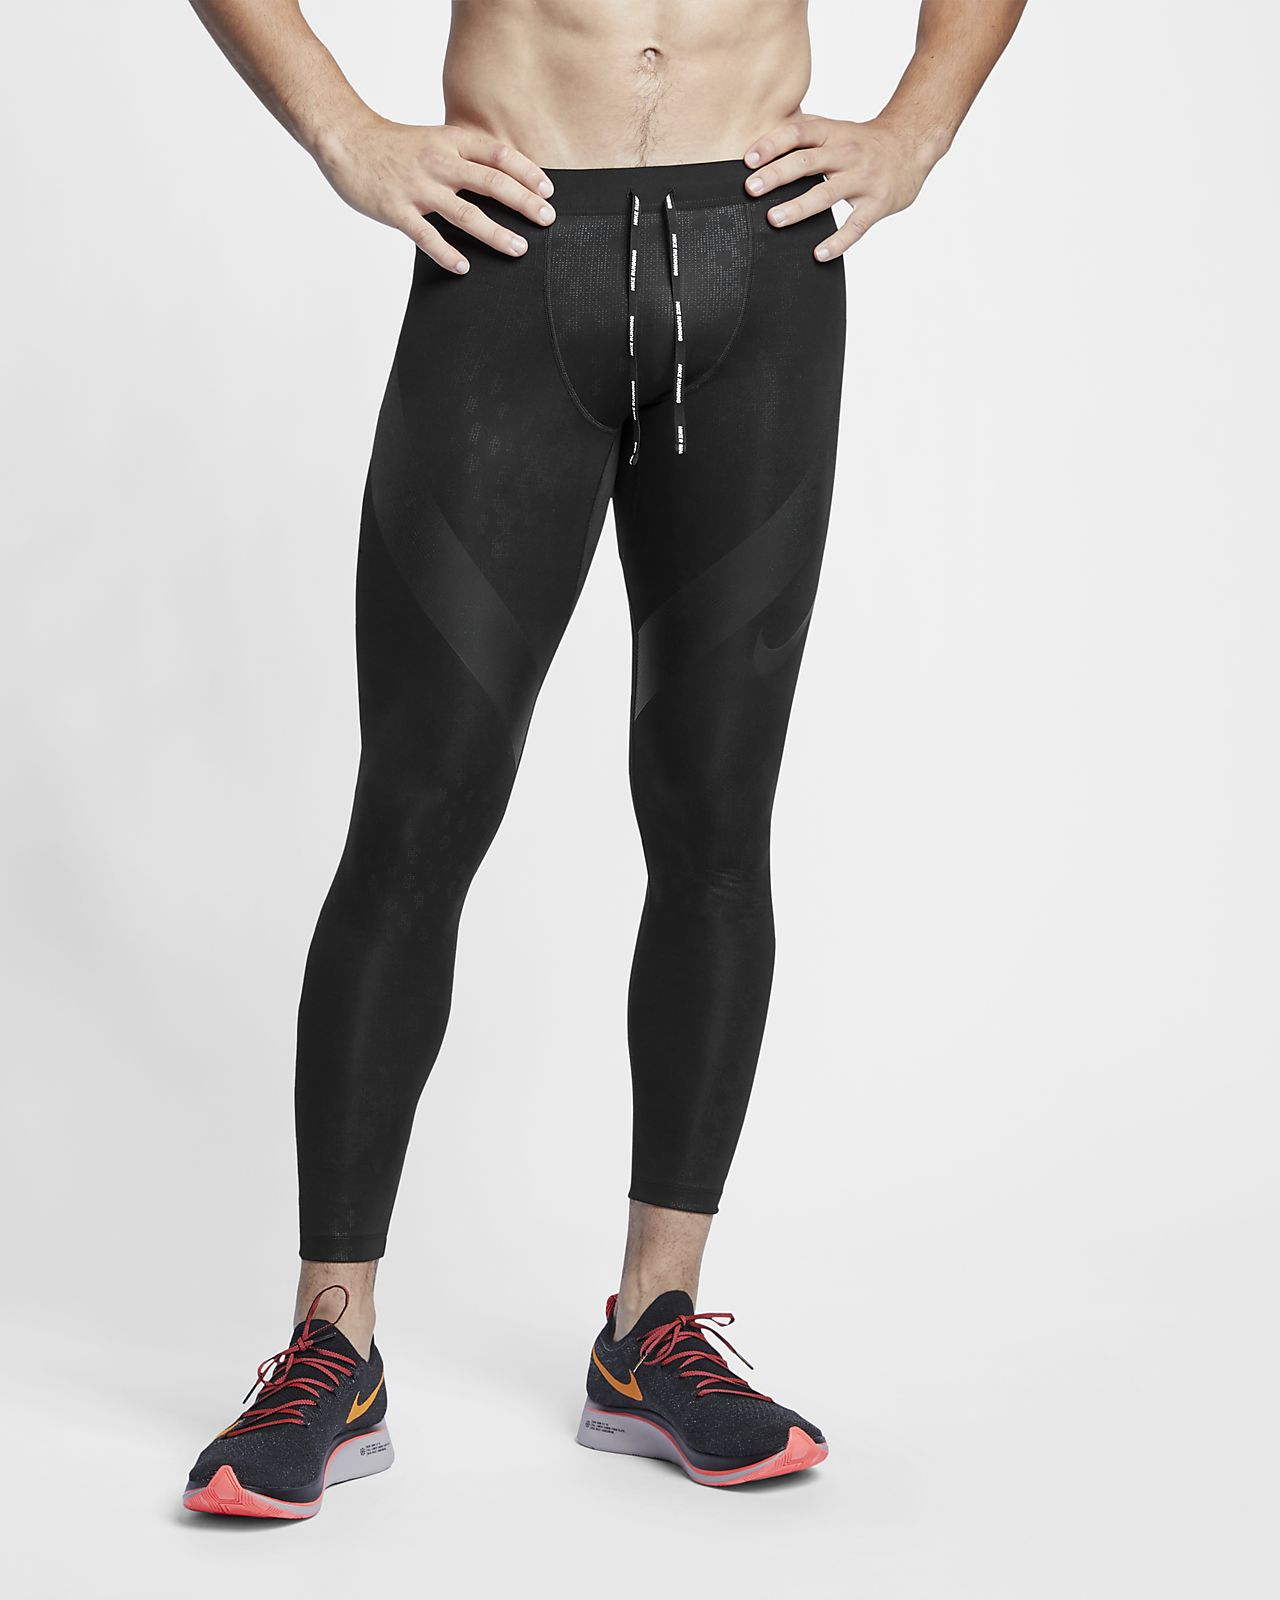 aa19e9ff1066d Nike Power Tech Men's Running Tights. Nike.com ZA